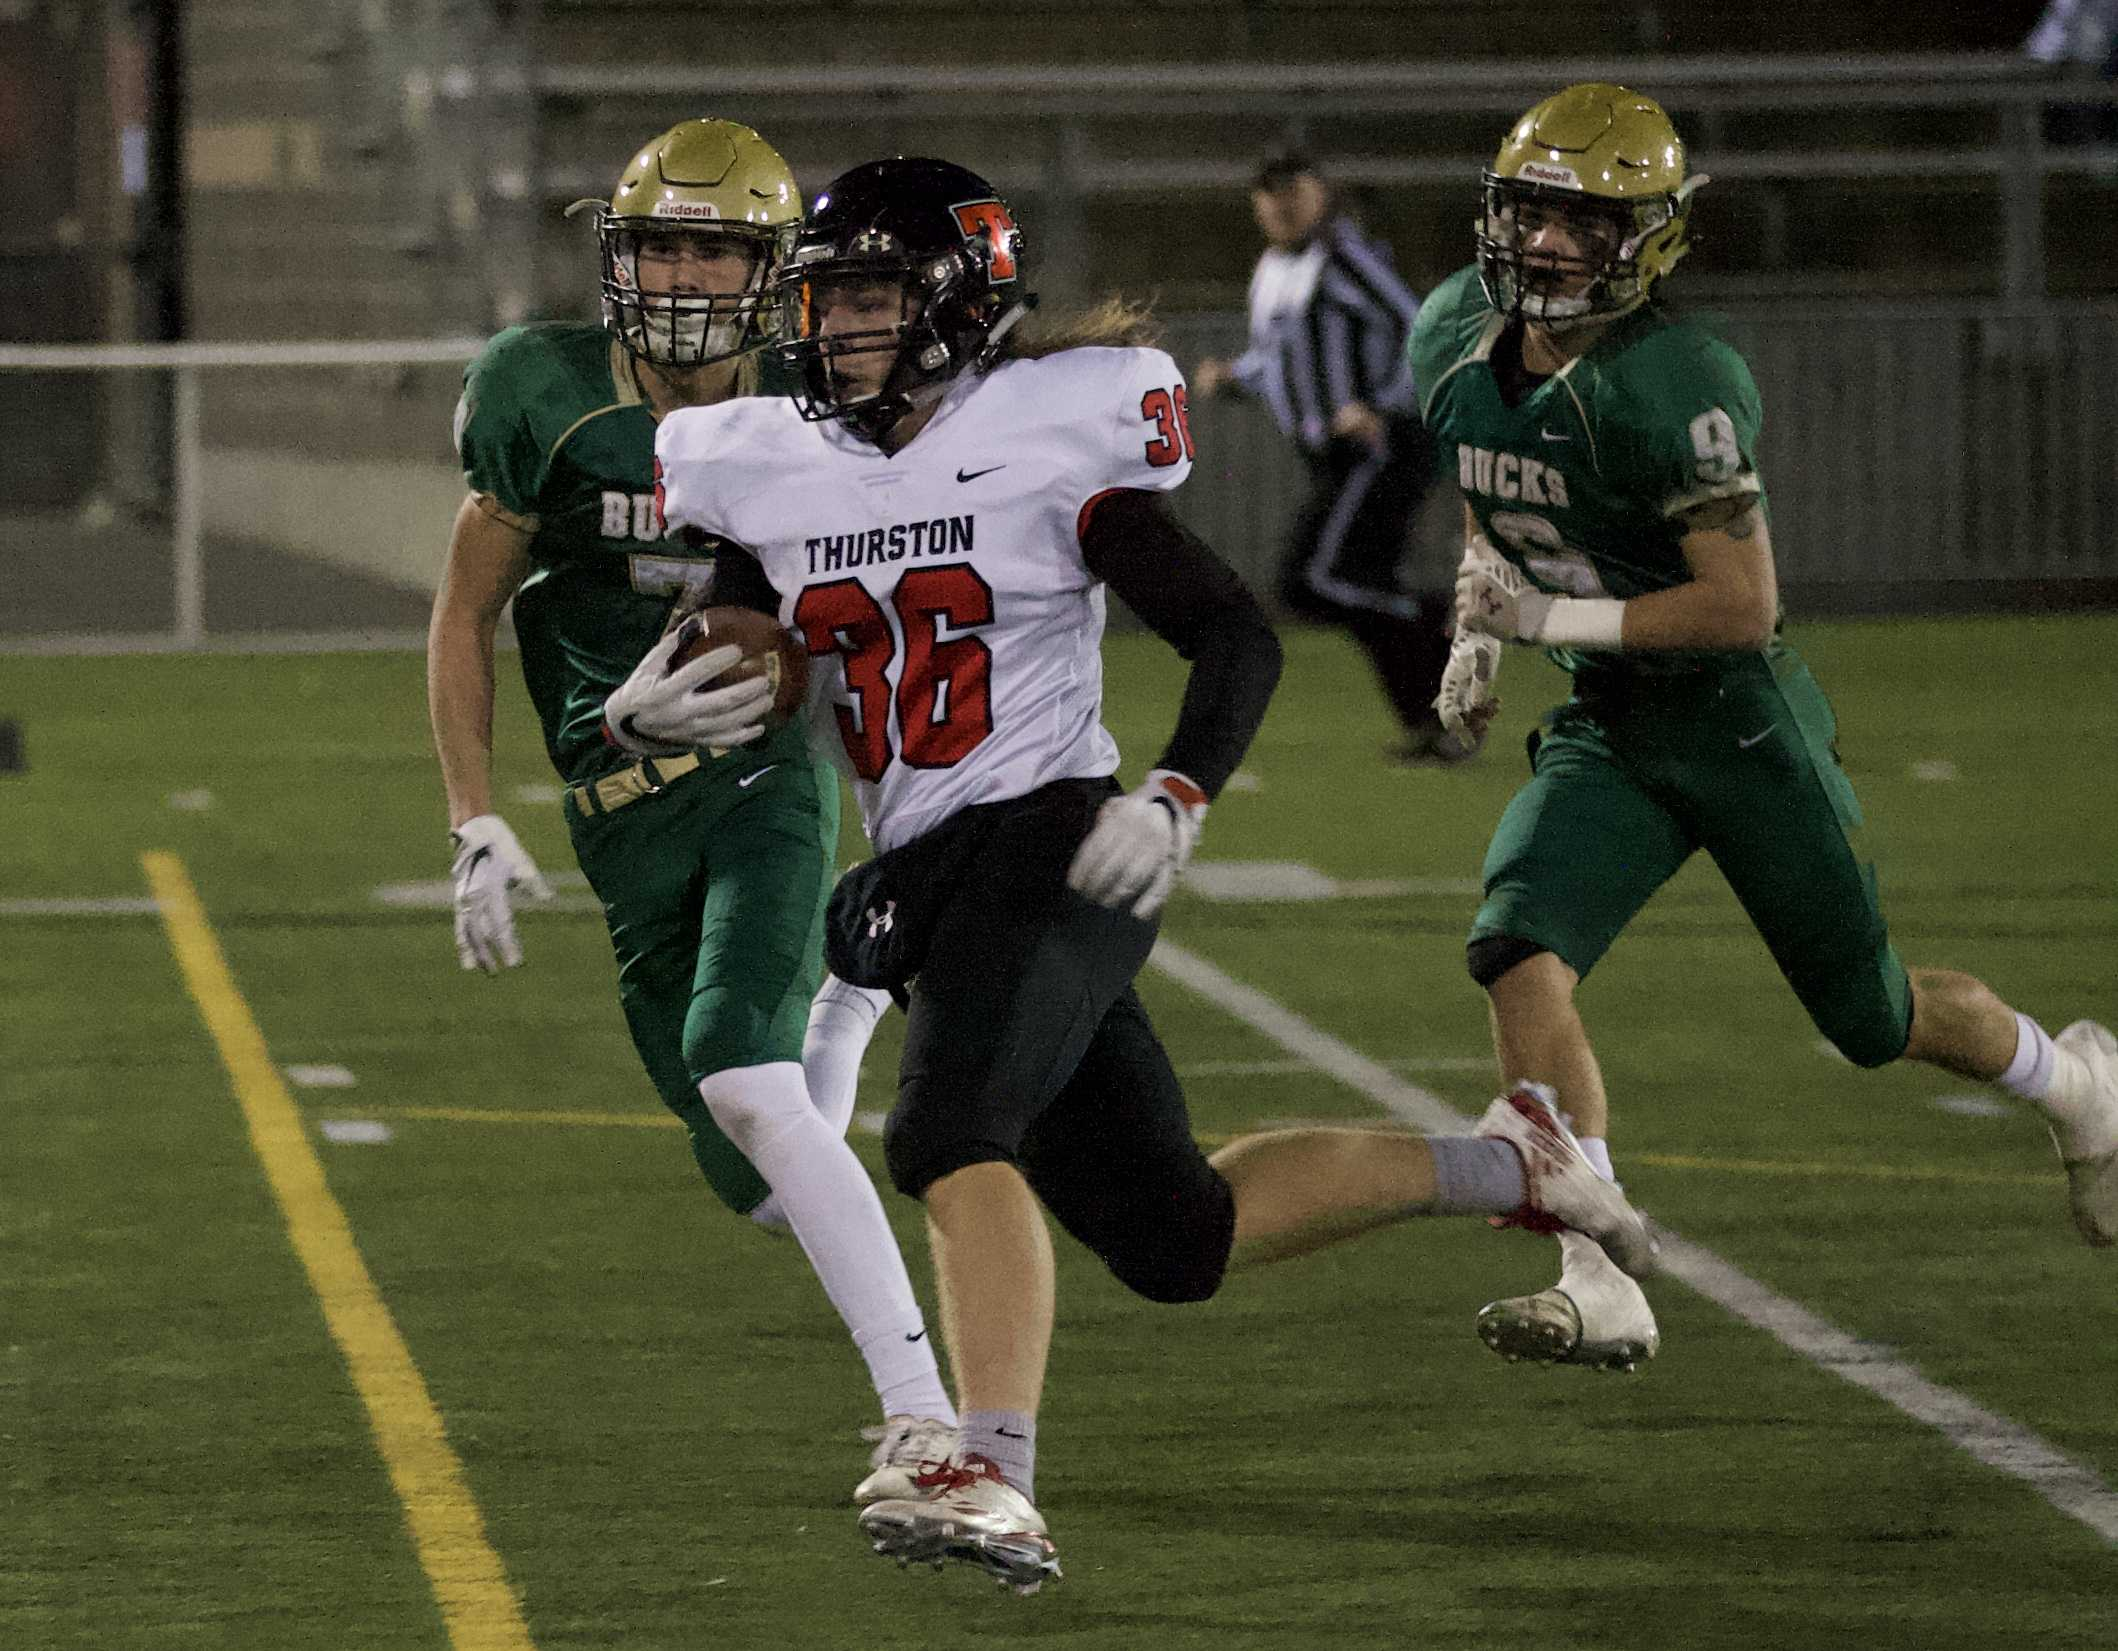 Thurston's Wesley Kommer (36) ran for 150 yards and two touchdowns in the first half Saturday night. (Photo by Norm Maves Jr.)